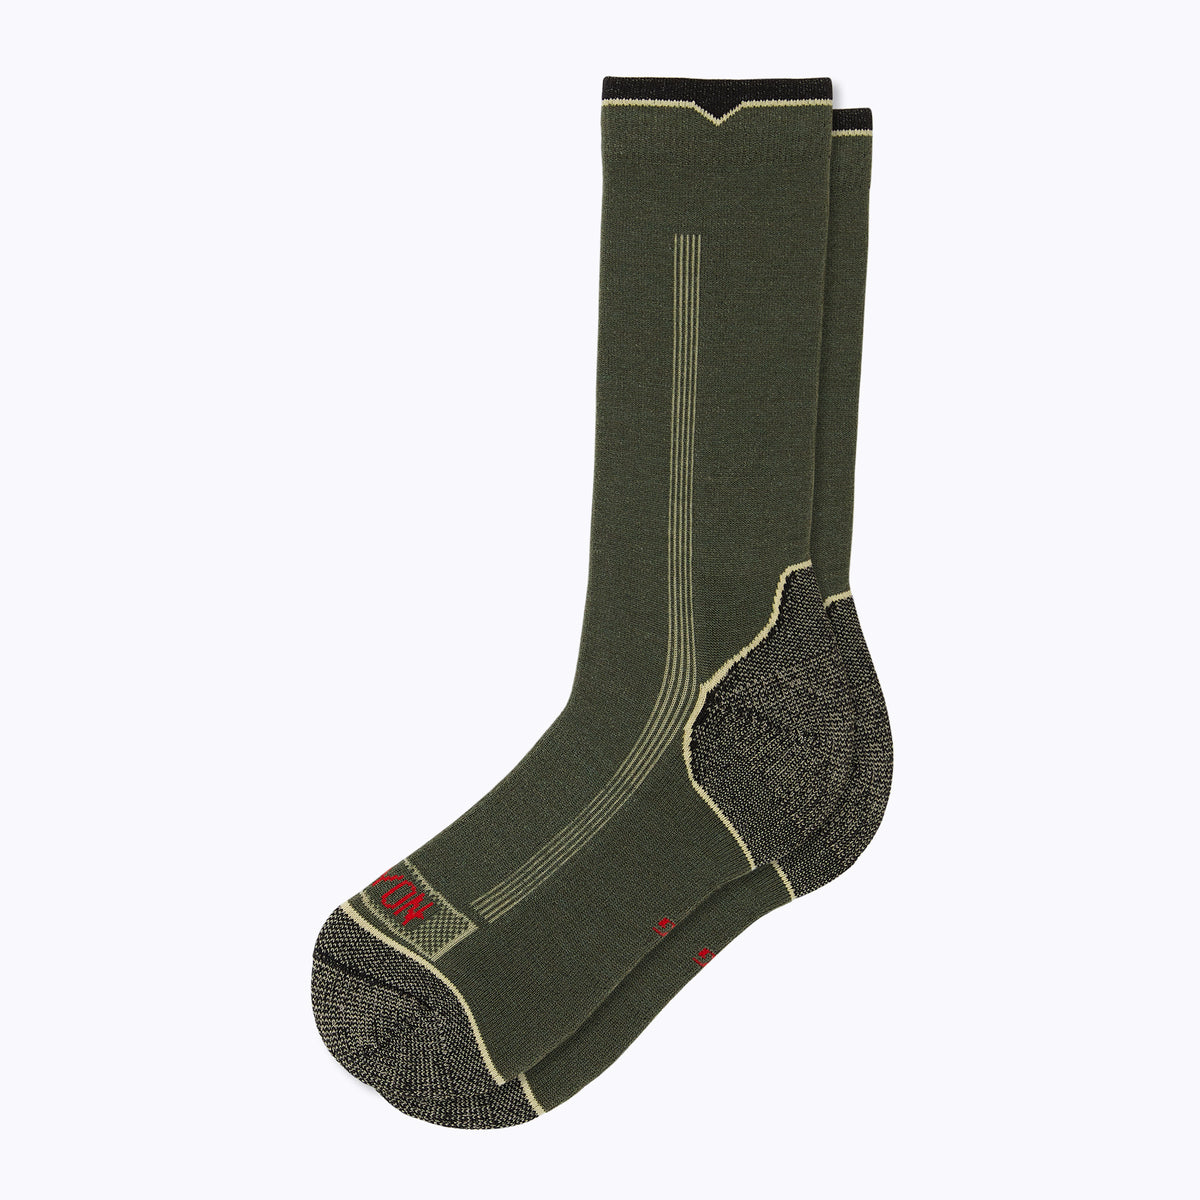 Destination Men's Crew Socks - Olive by Canyon Socks